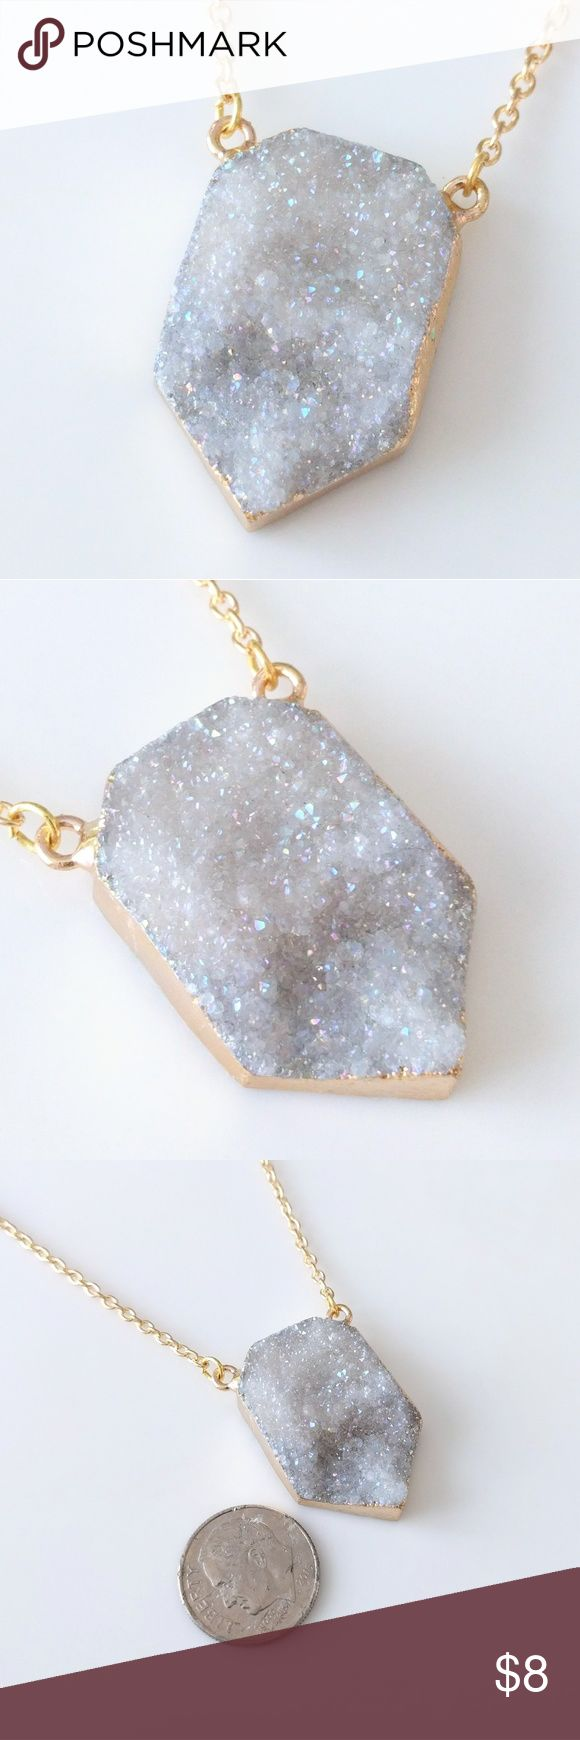 """Gold-plated genuine agate druzy shield necklace Nickel-free chain measures about 18"""".  Aurora borealis iridescence.  PRICE IS FIRM and extremely reasonable; click """"add to bundle"""" to save 10% on your purchase of 2+ items today! Jewelry Necklaces"""